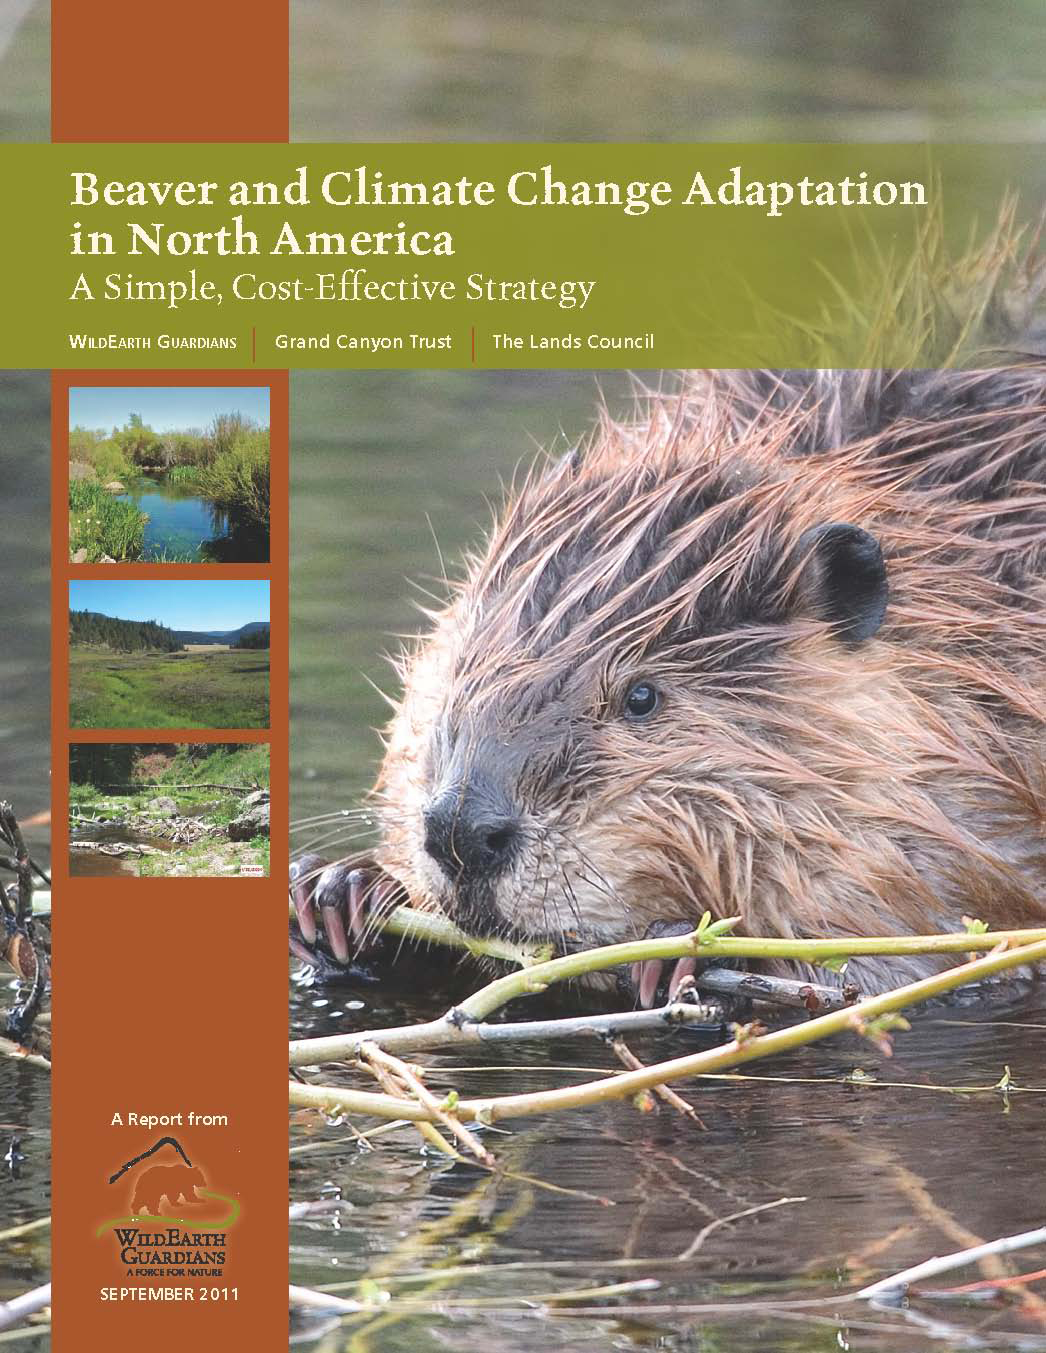 Beaver and Climate Change Report Cover Image